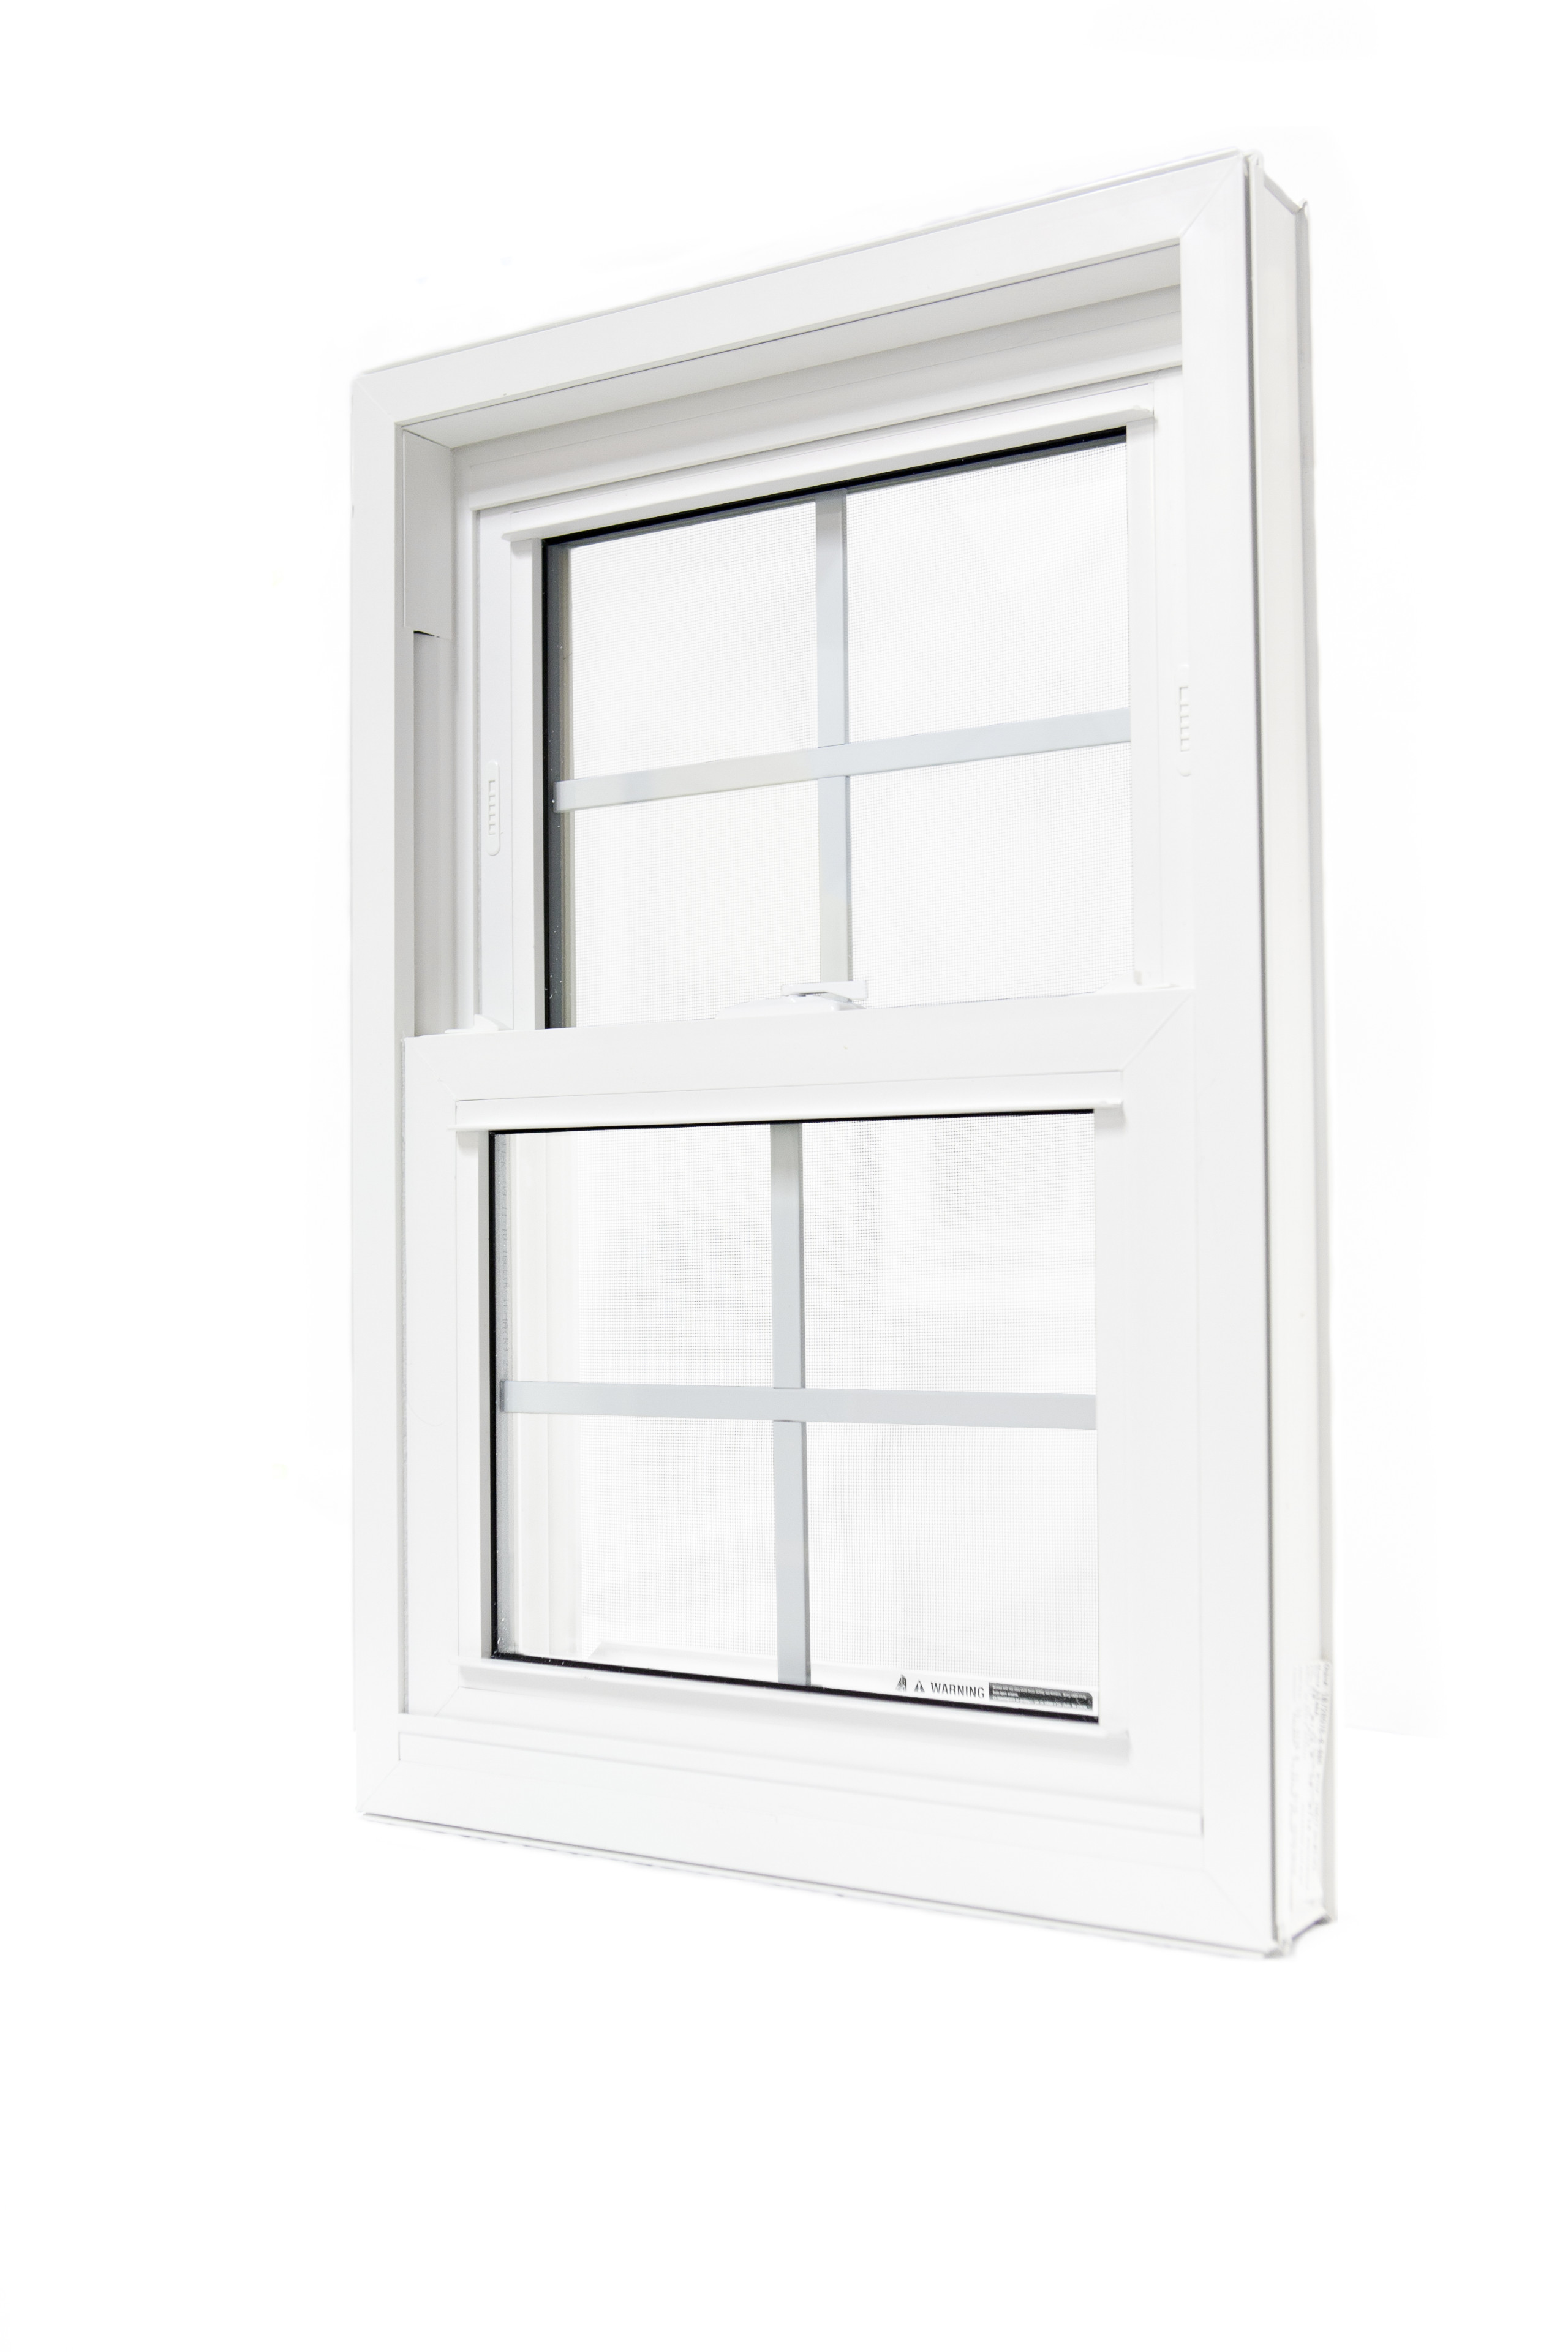 sliding window with metal cross